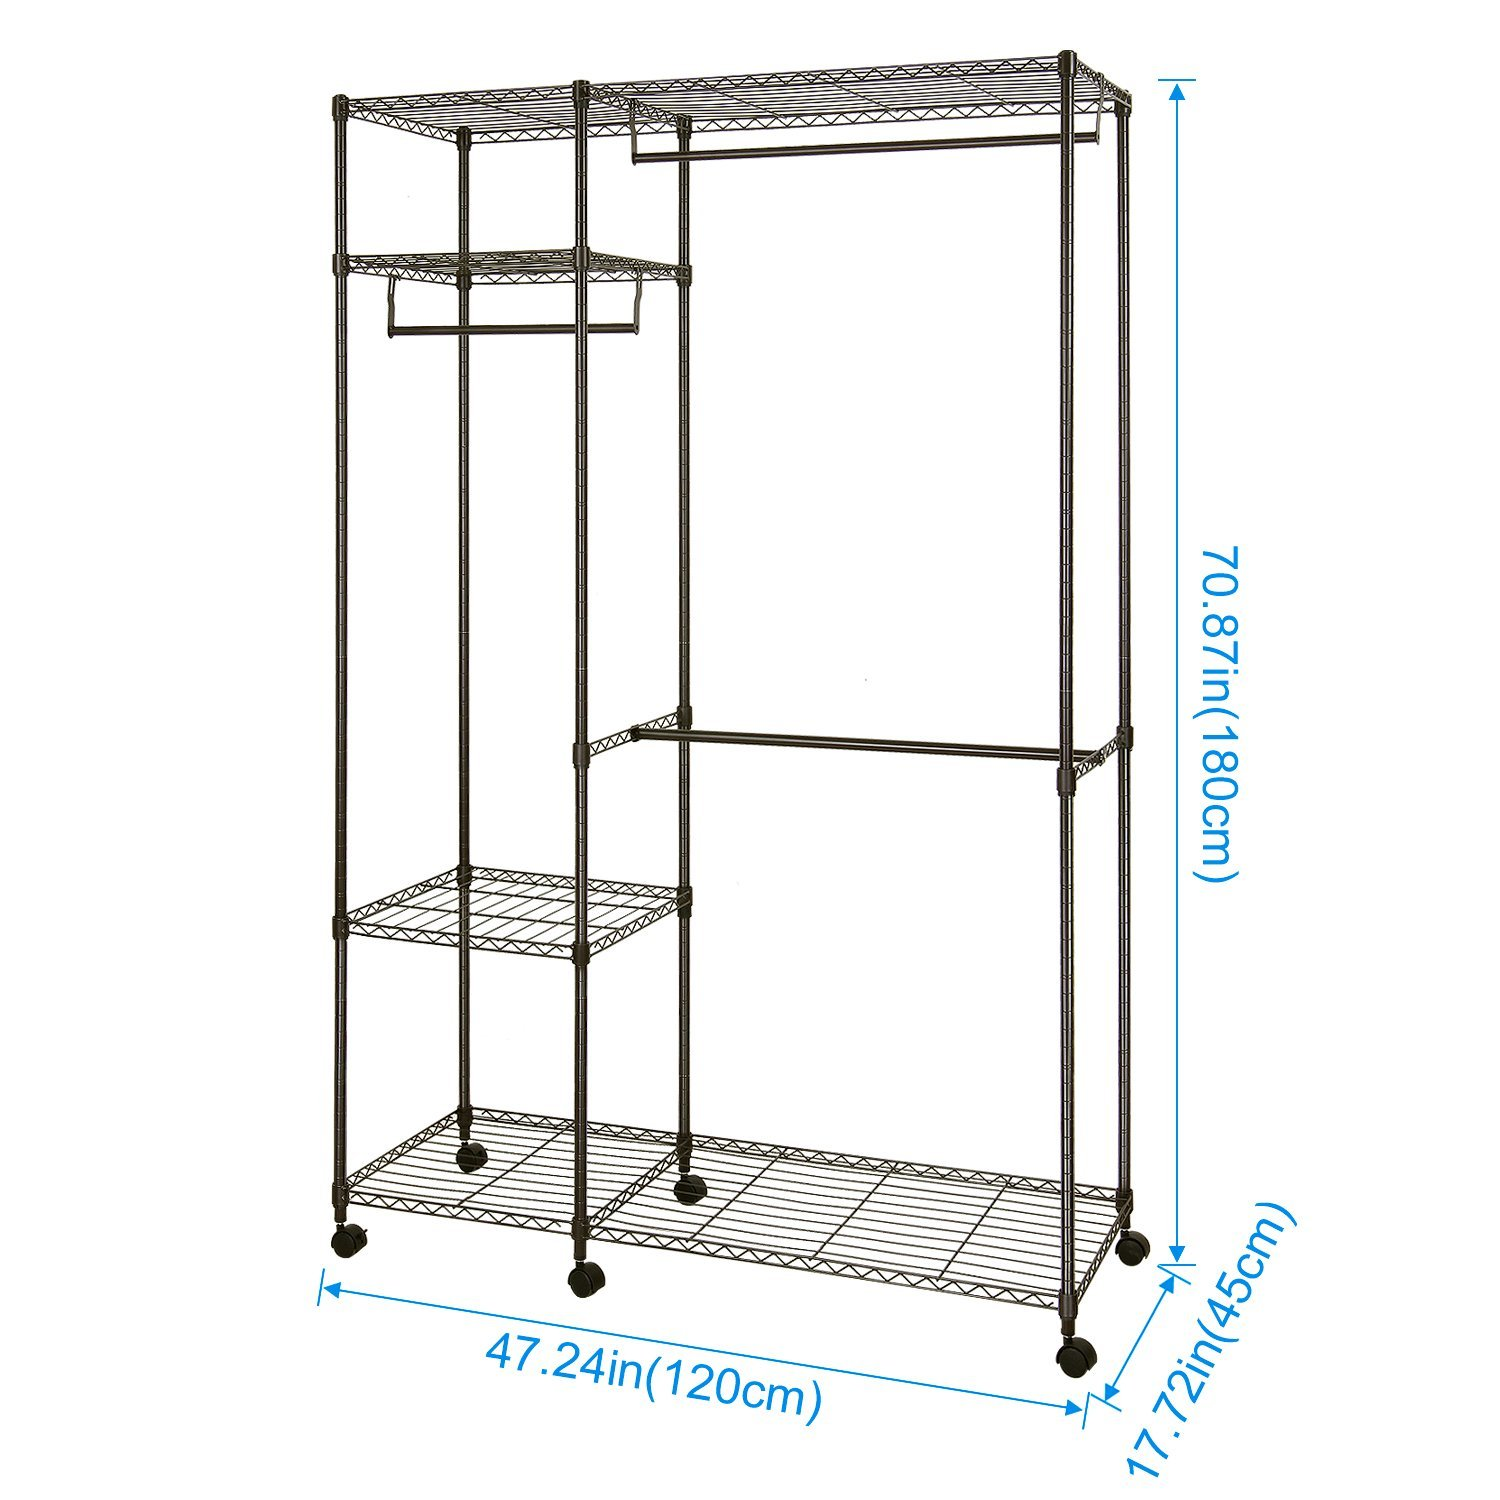 can home x dp ca kitchen rod freestanding double amazon wrd honey free clothes closet rack do standing